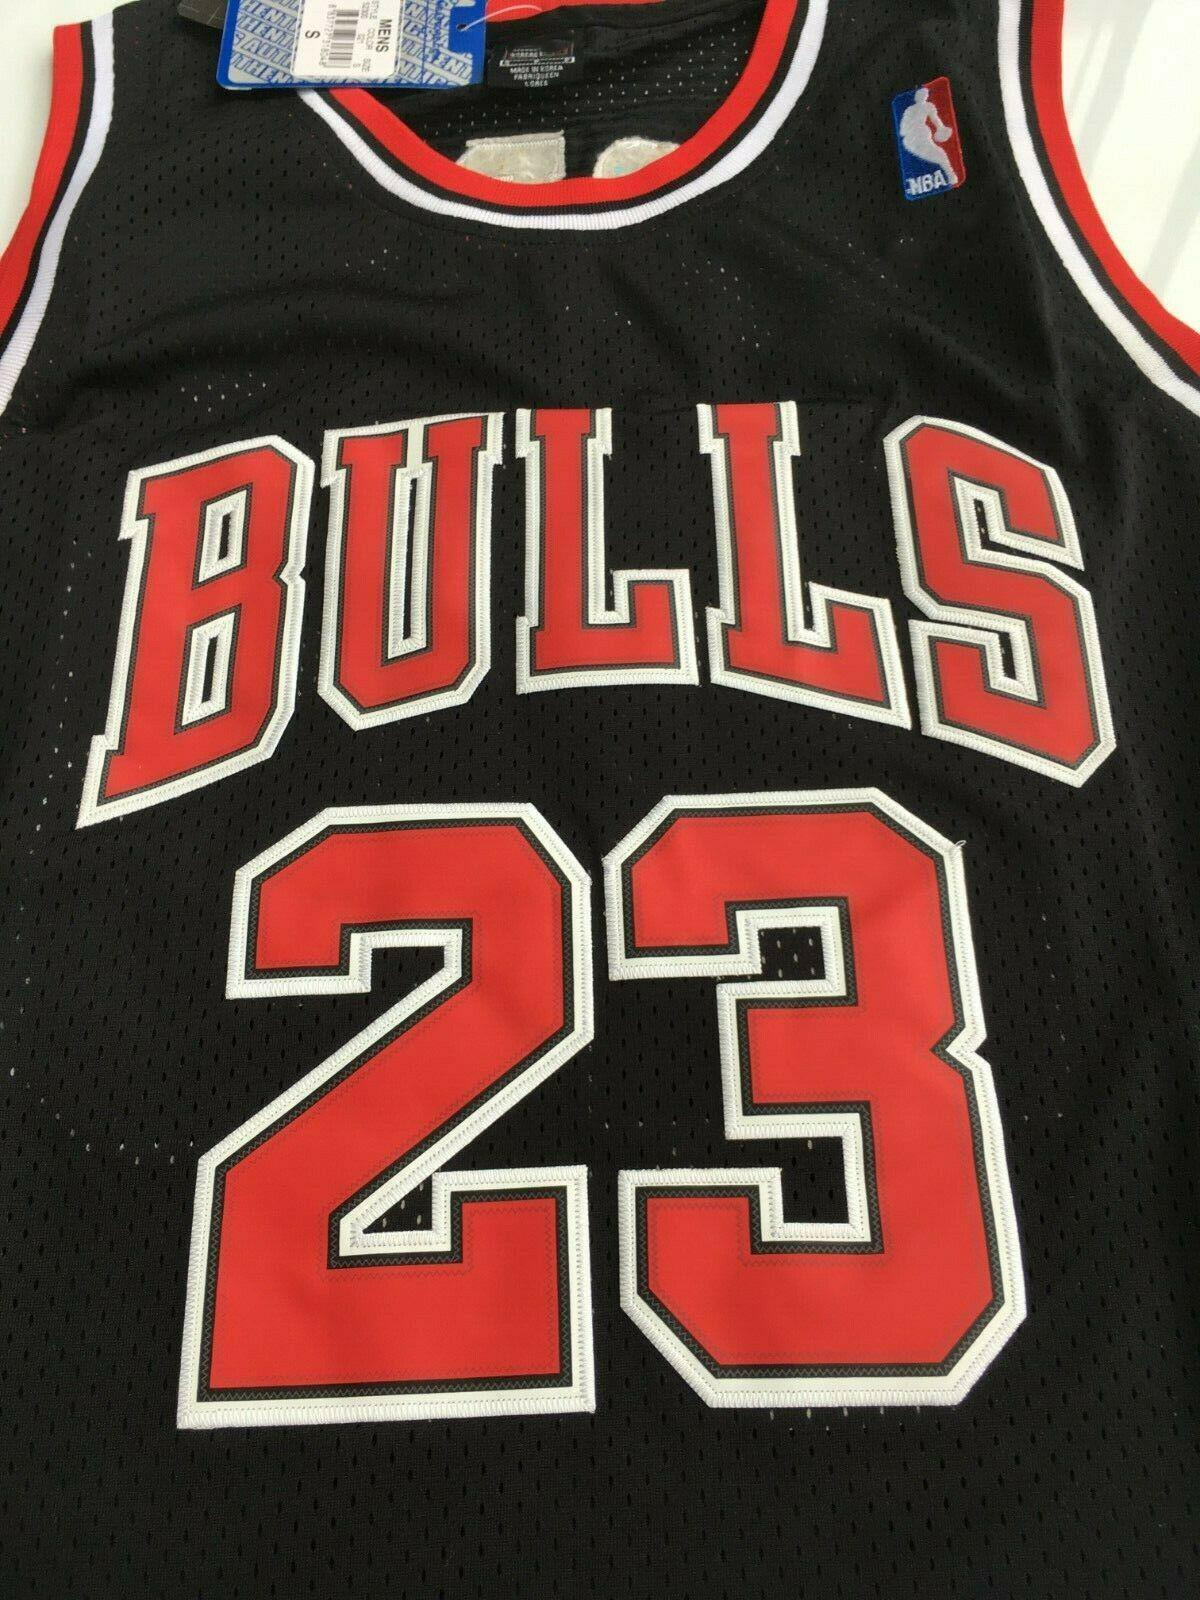 MICHAEL-JORDAN-CHICAGO-BULLS-23-BLACK-NBA-Basketball-SWINGMAN-JERSEY-Shirt miniature 13